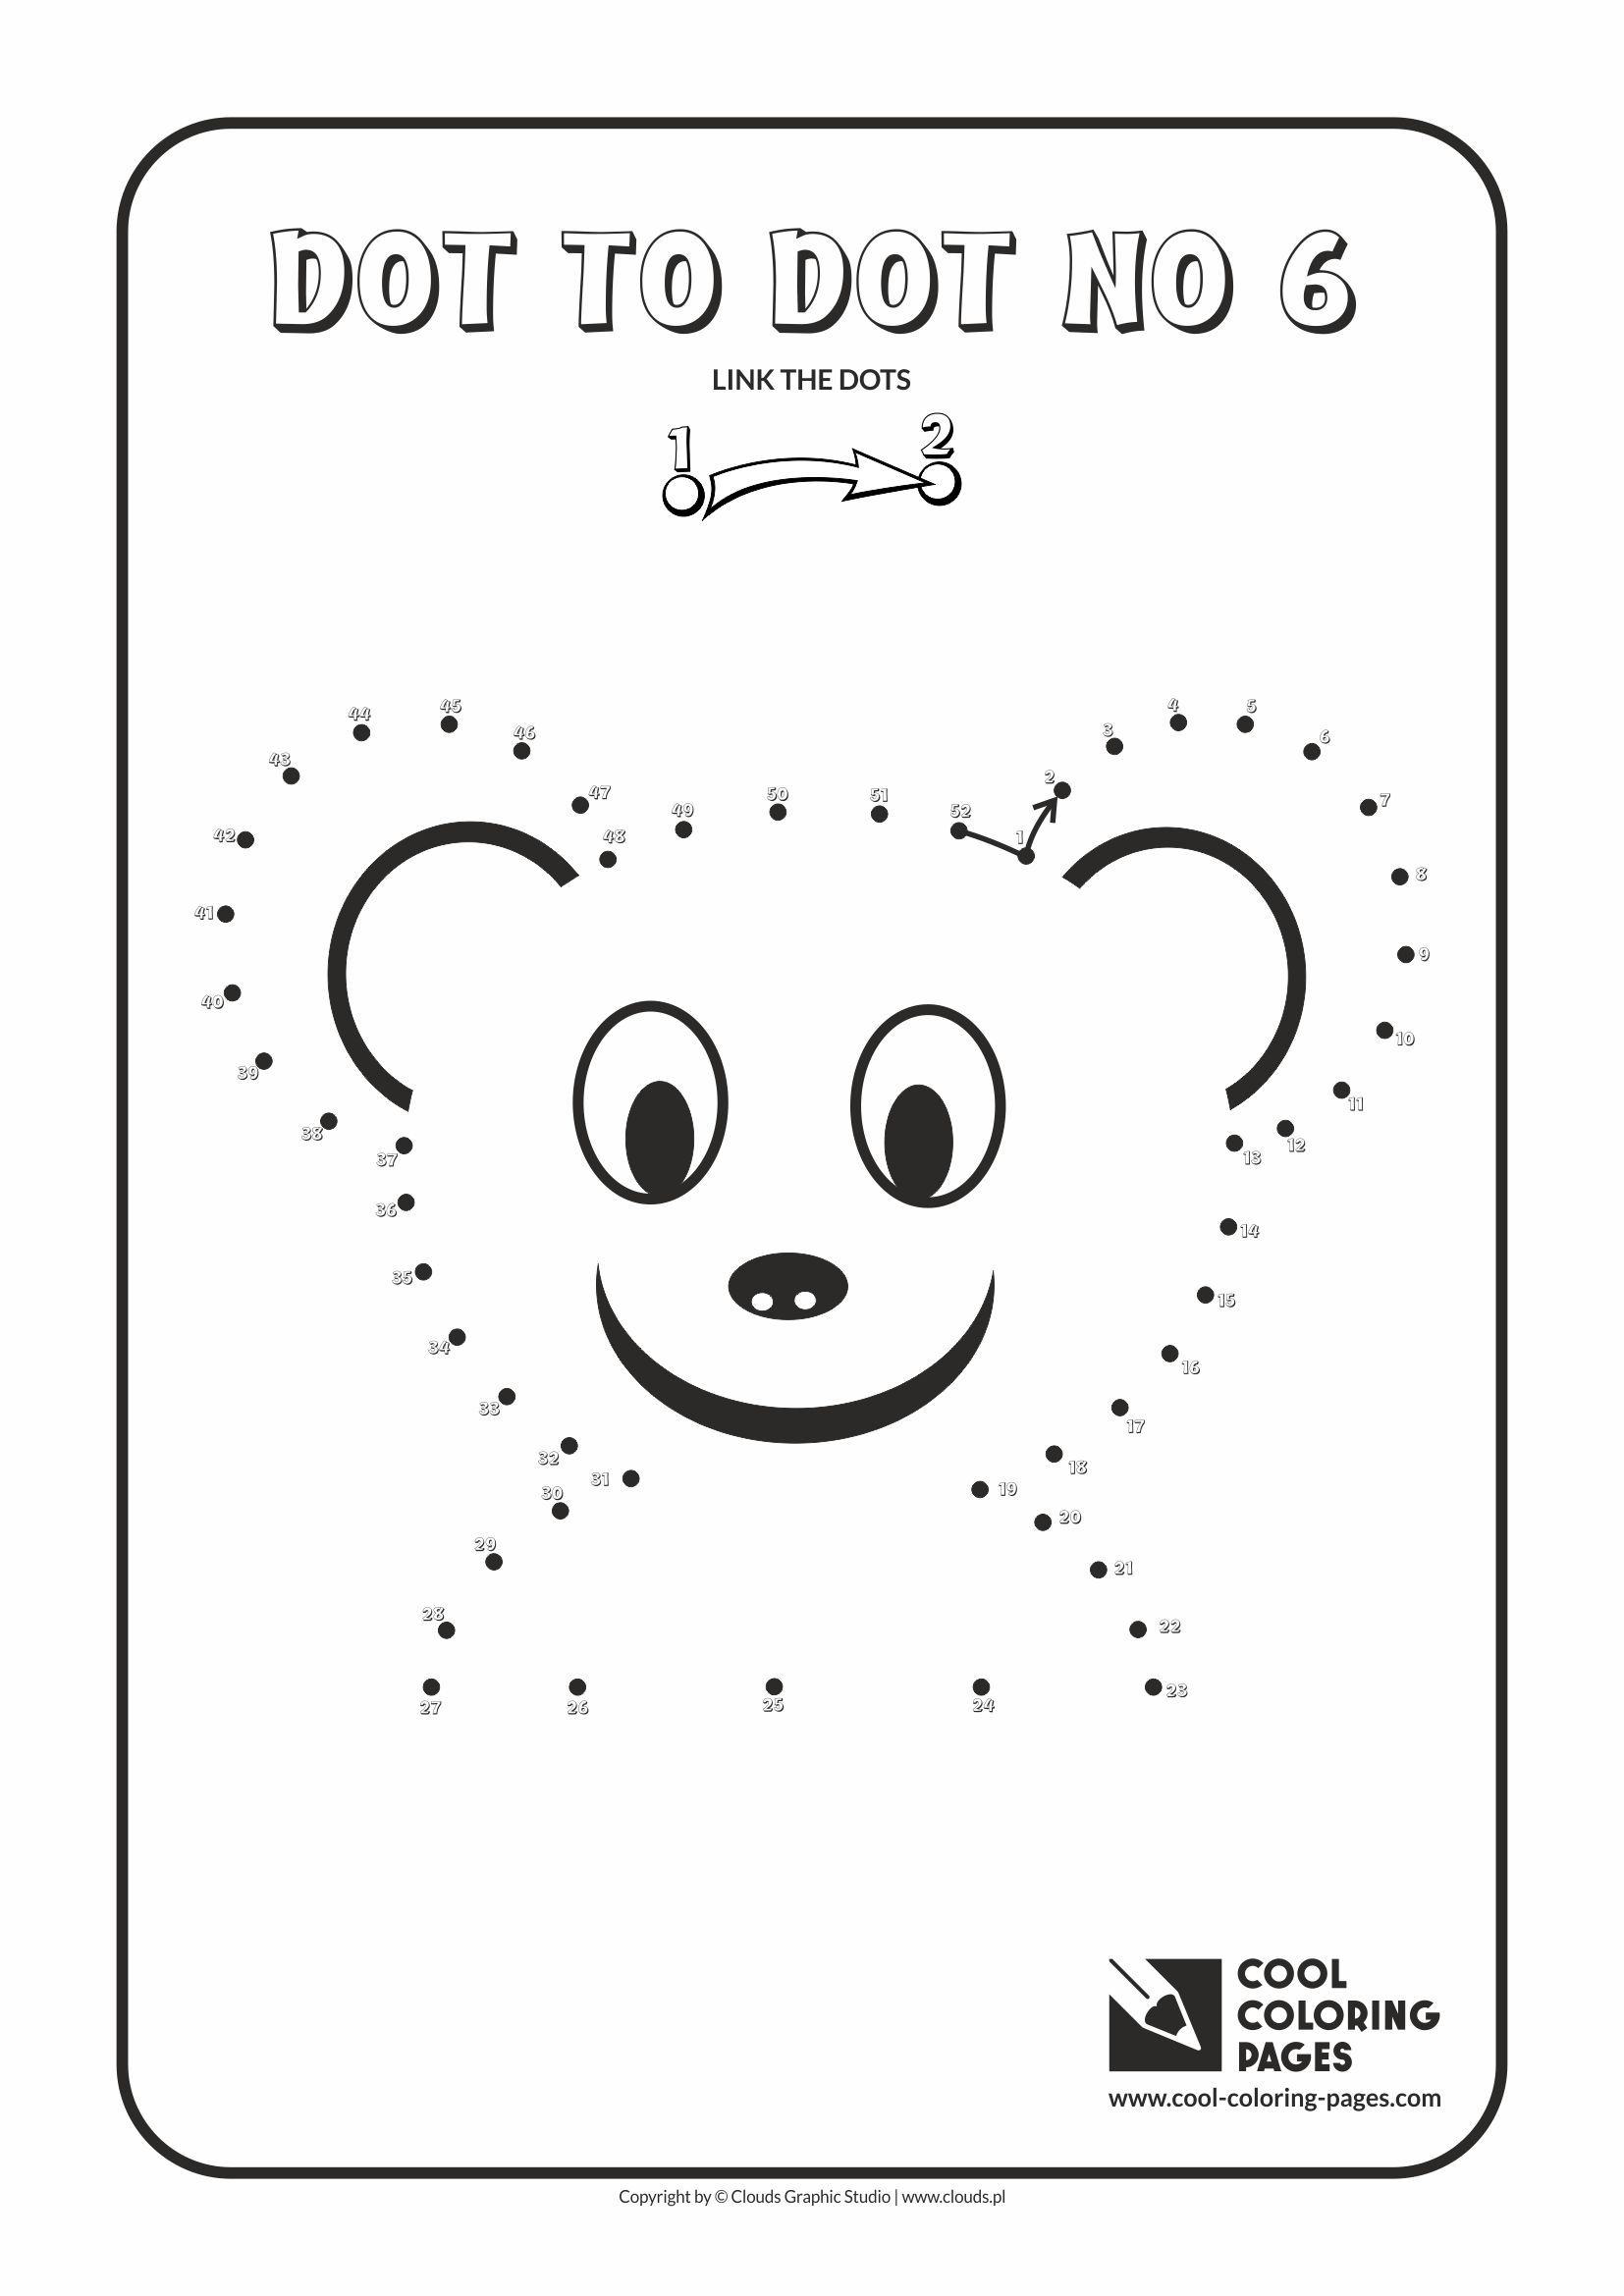 Cool Coloring Pages - Dot to dot / Dot to dot no 6